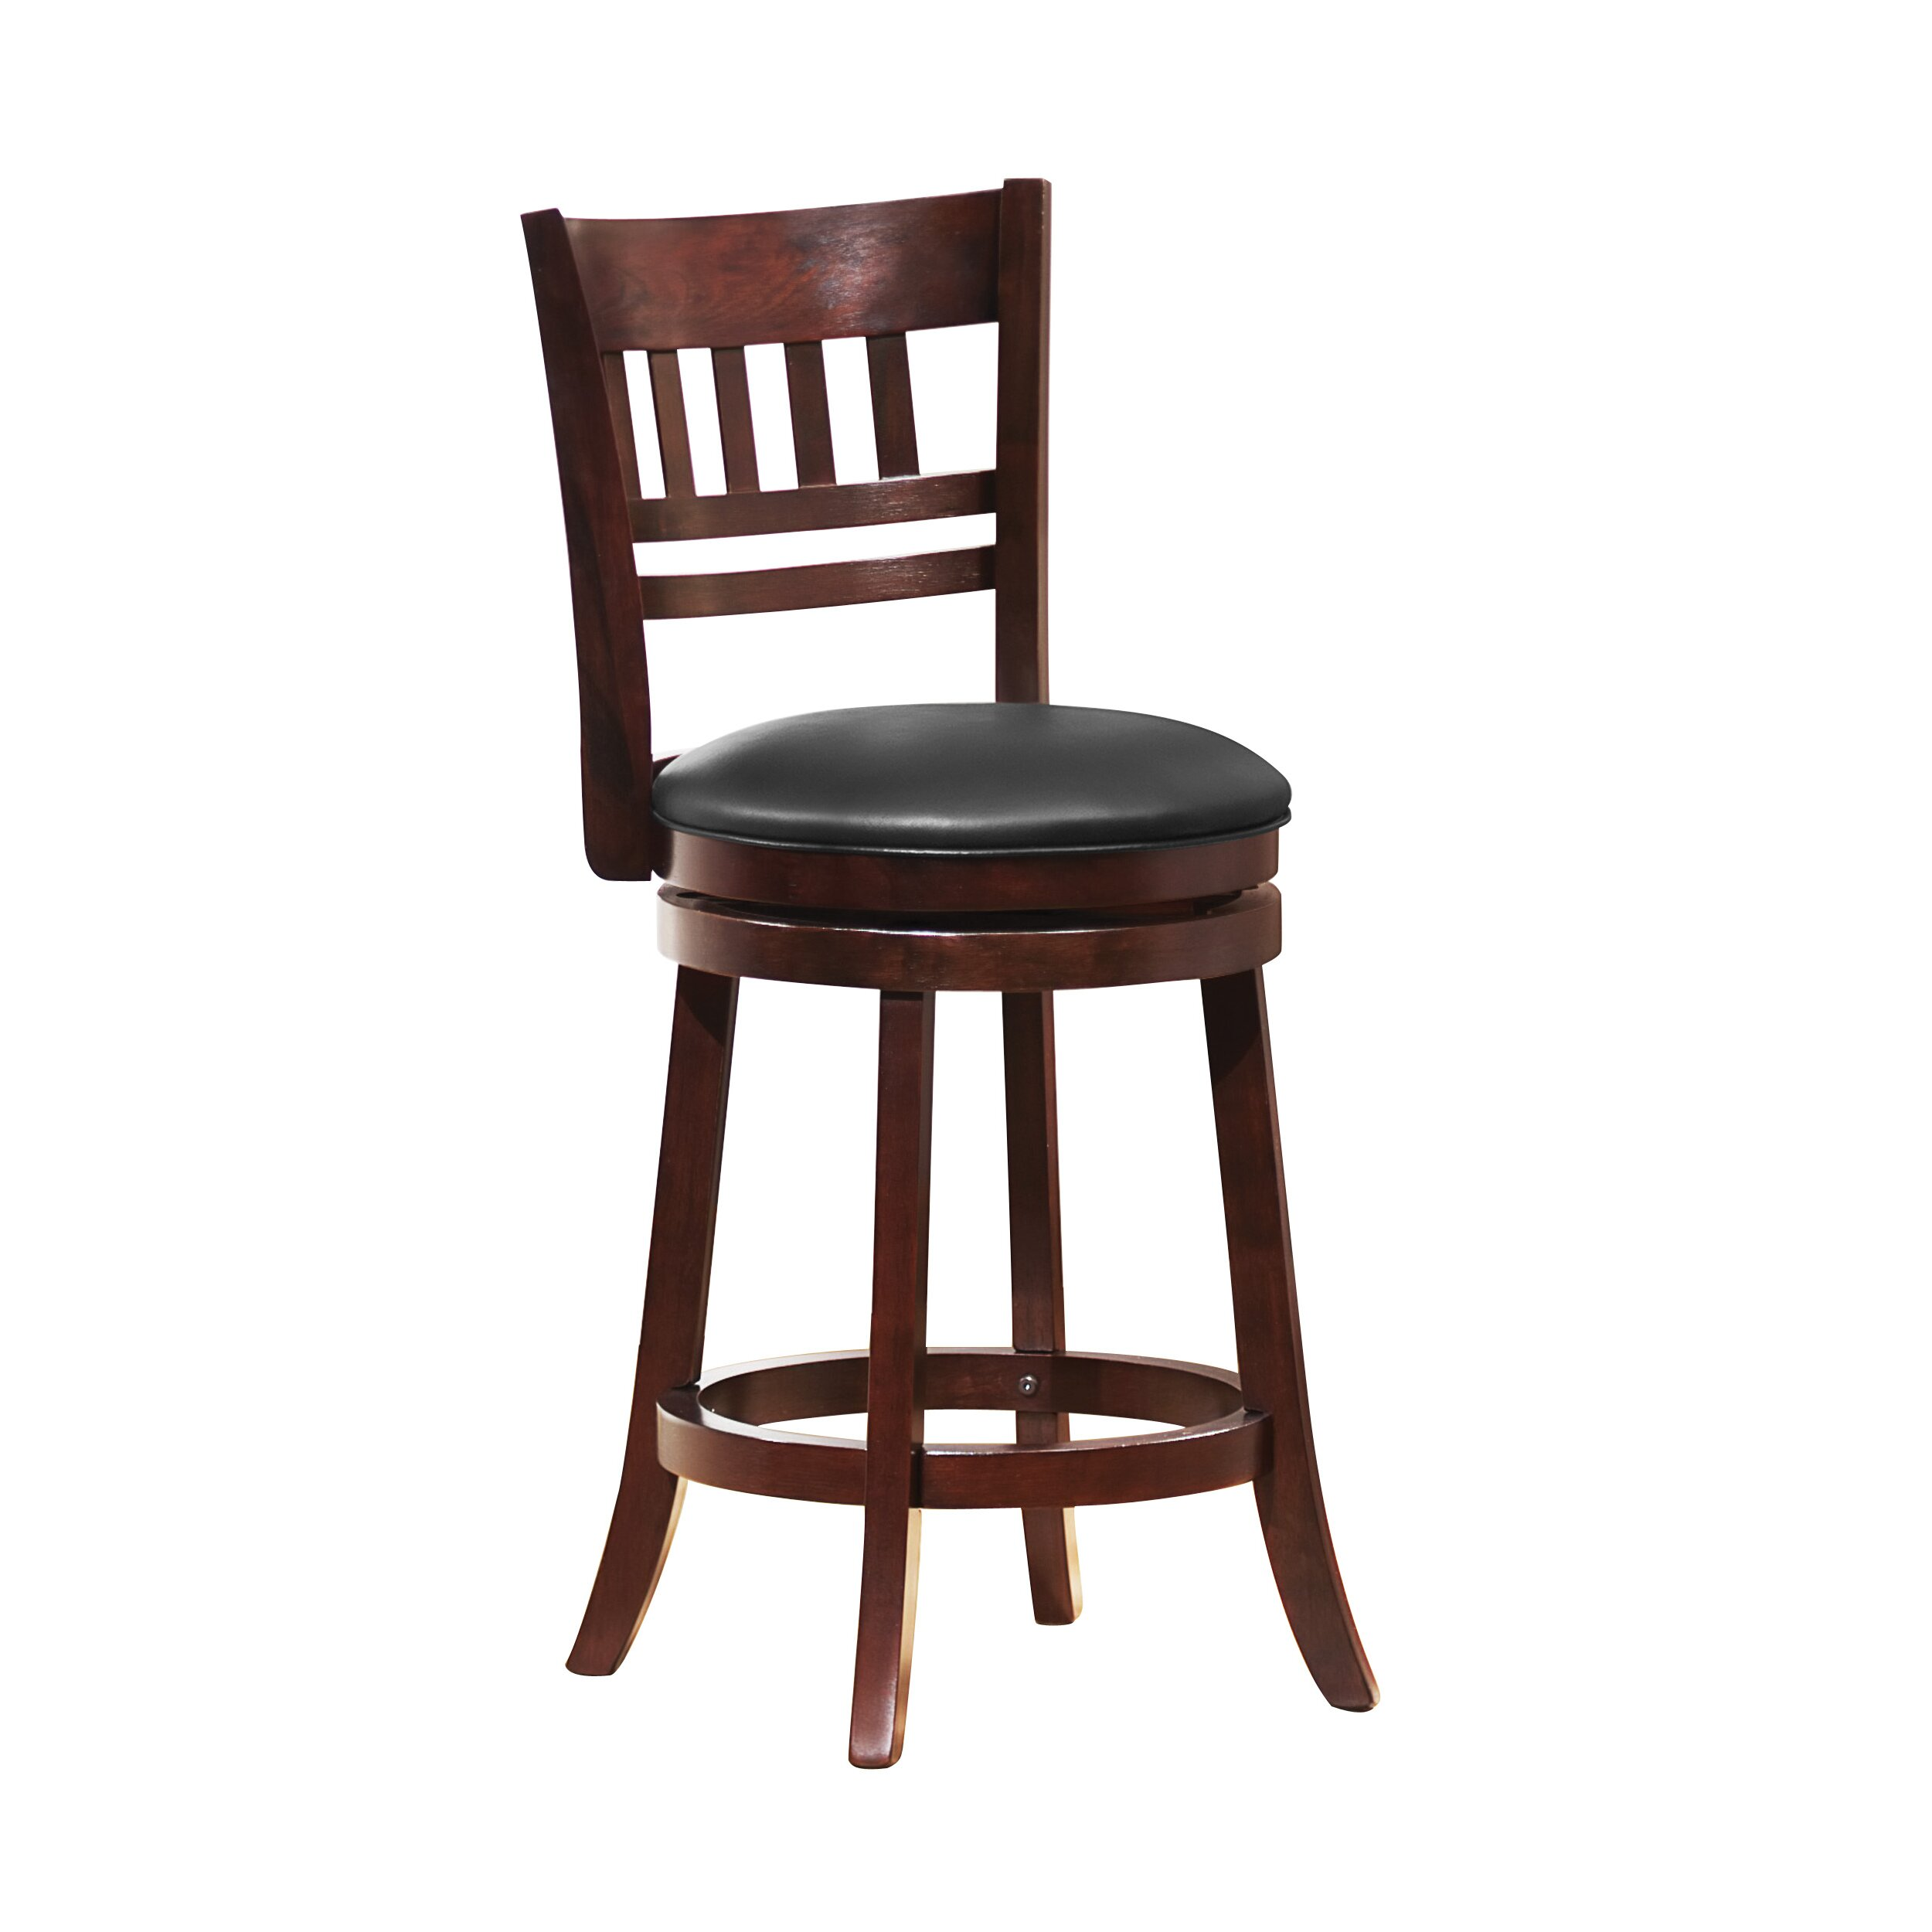 Woodbridge Home Designs Furniture Review Woodhaven Hill 24 Quot Swivel Bar Stool Amp Reviews Wayfair